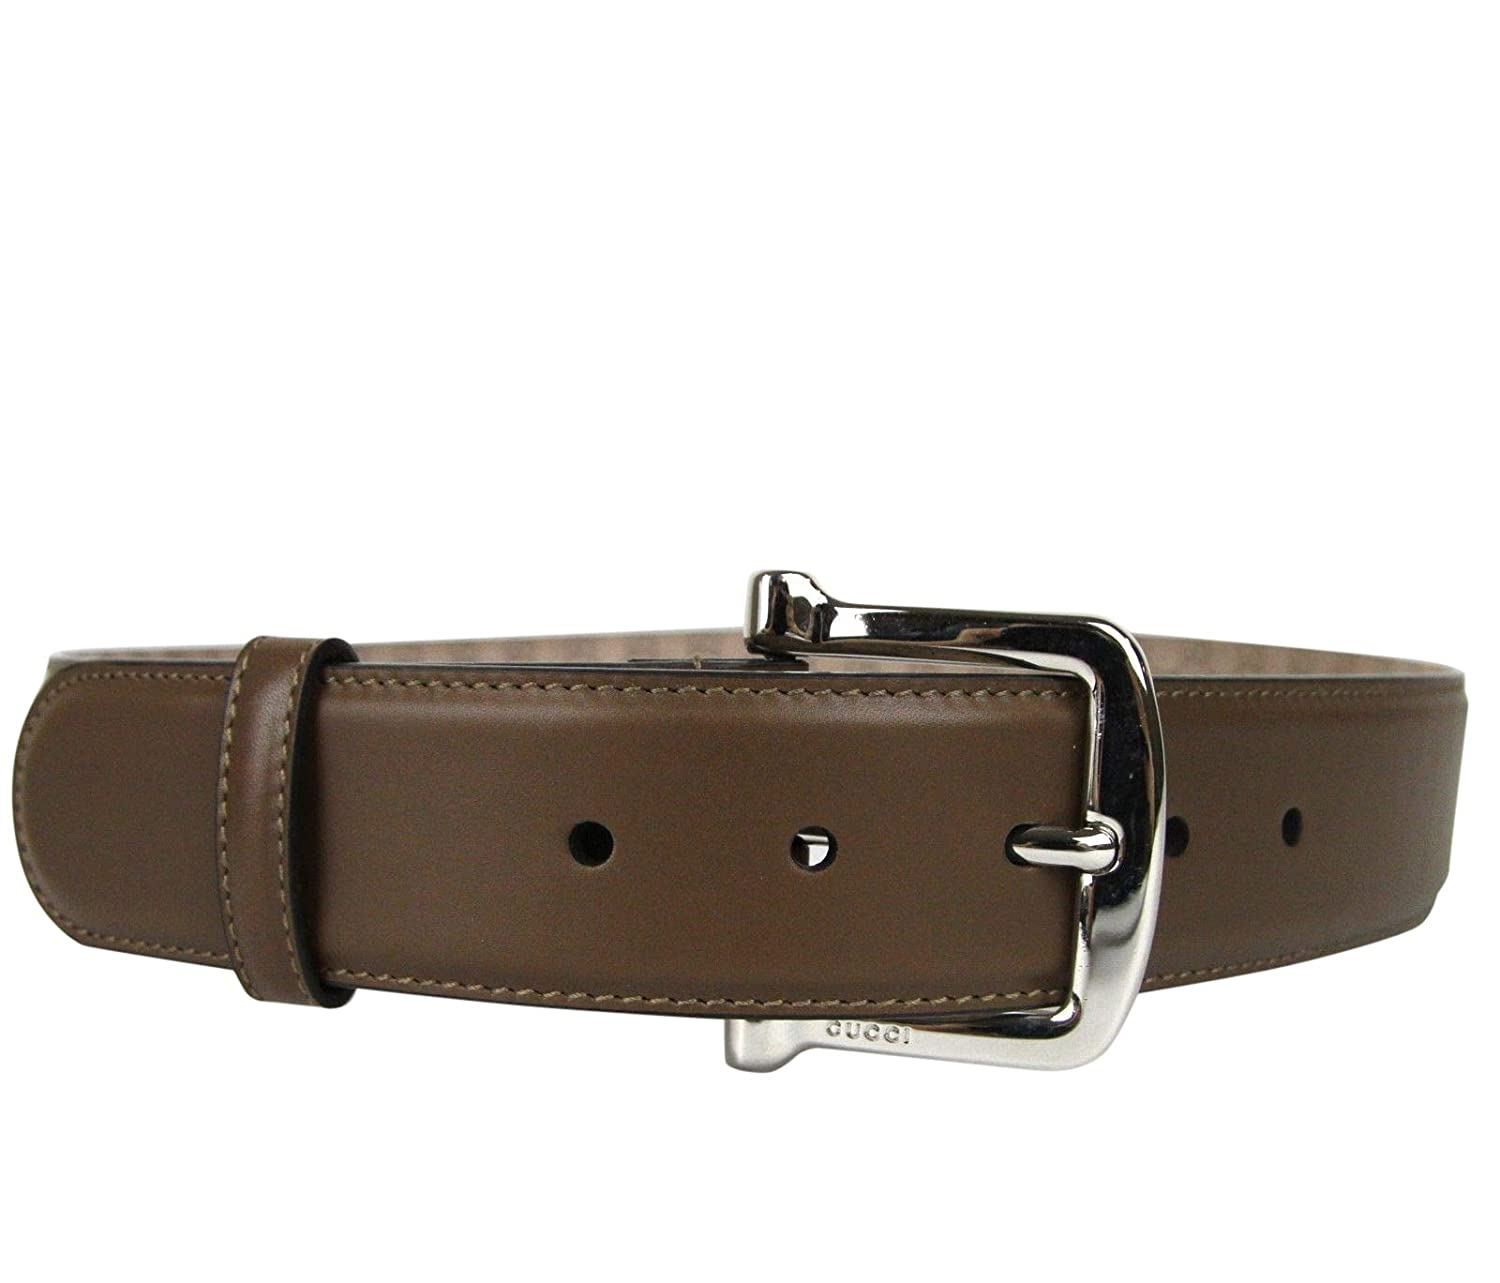 1a8c8eeca Amazon.com: Gucci Women's Silver Buckle Brown Leather Belt 281548 2527 (80/ 32): Clothing